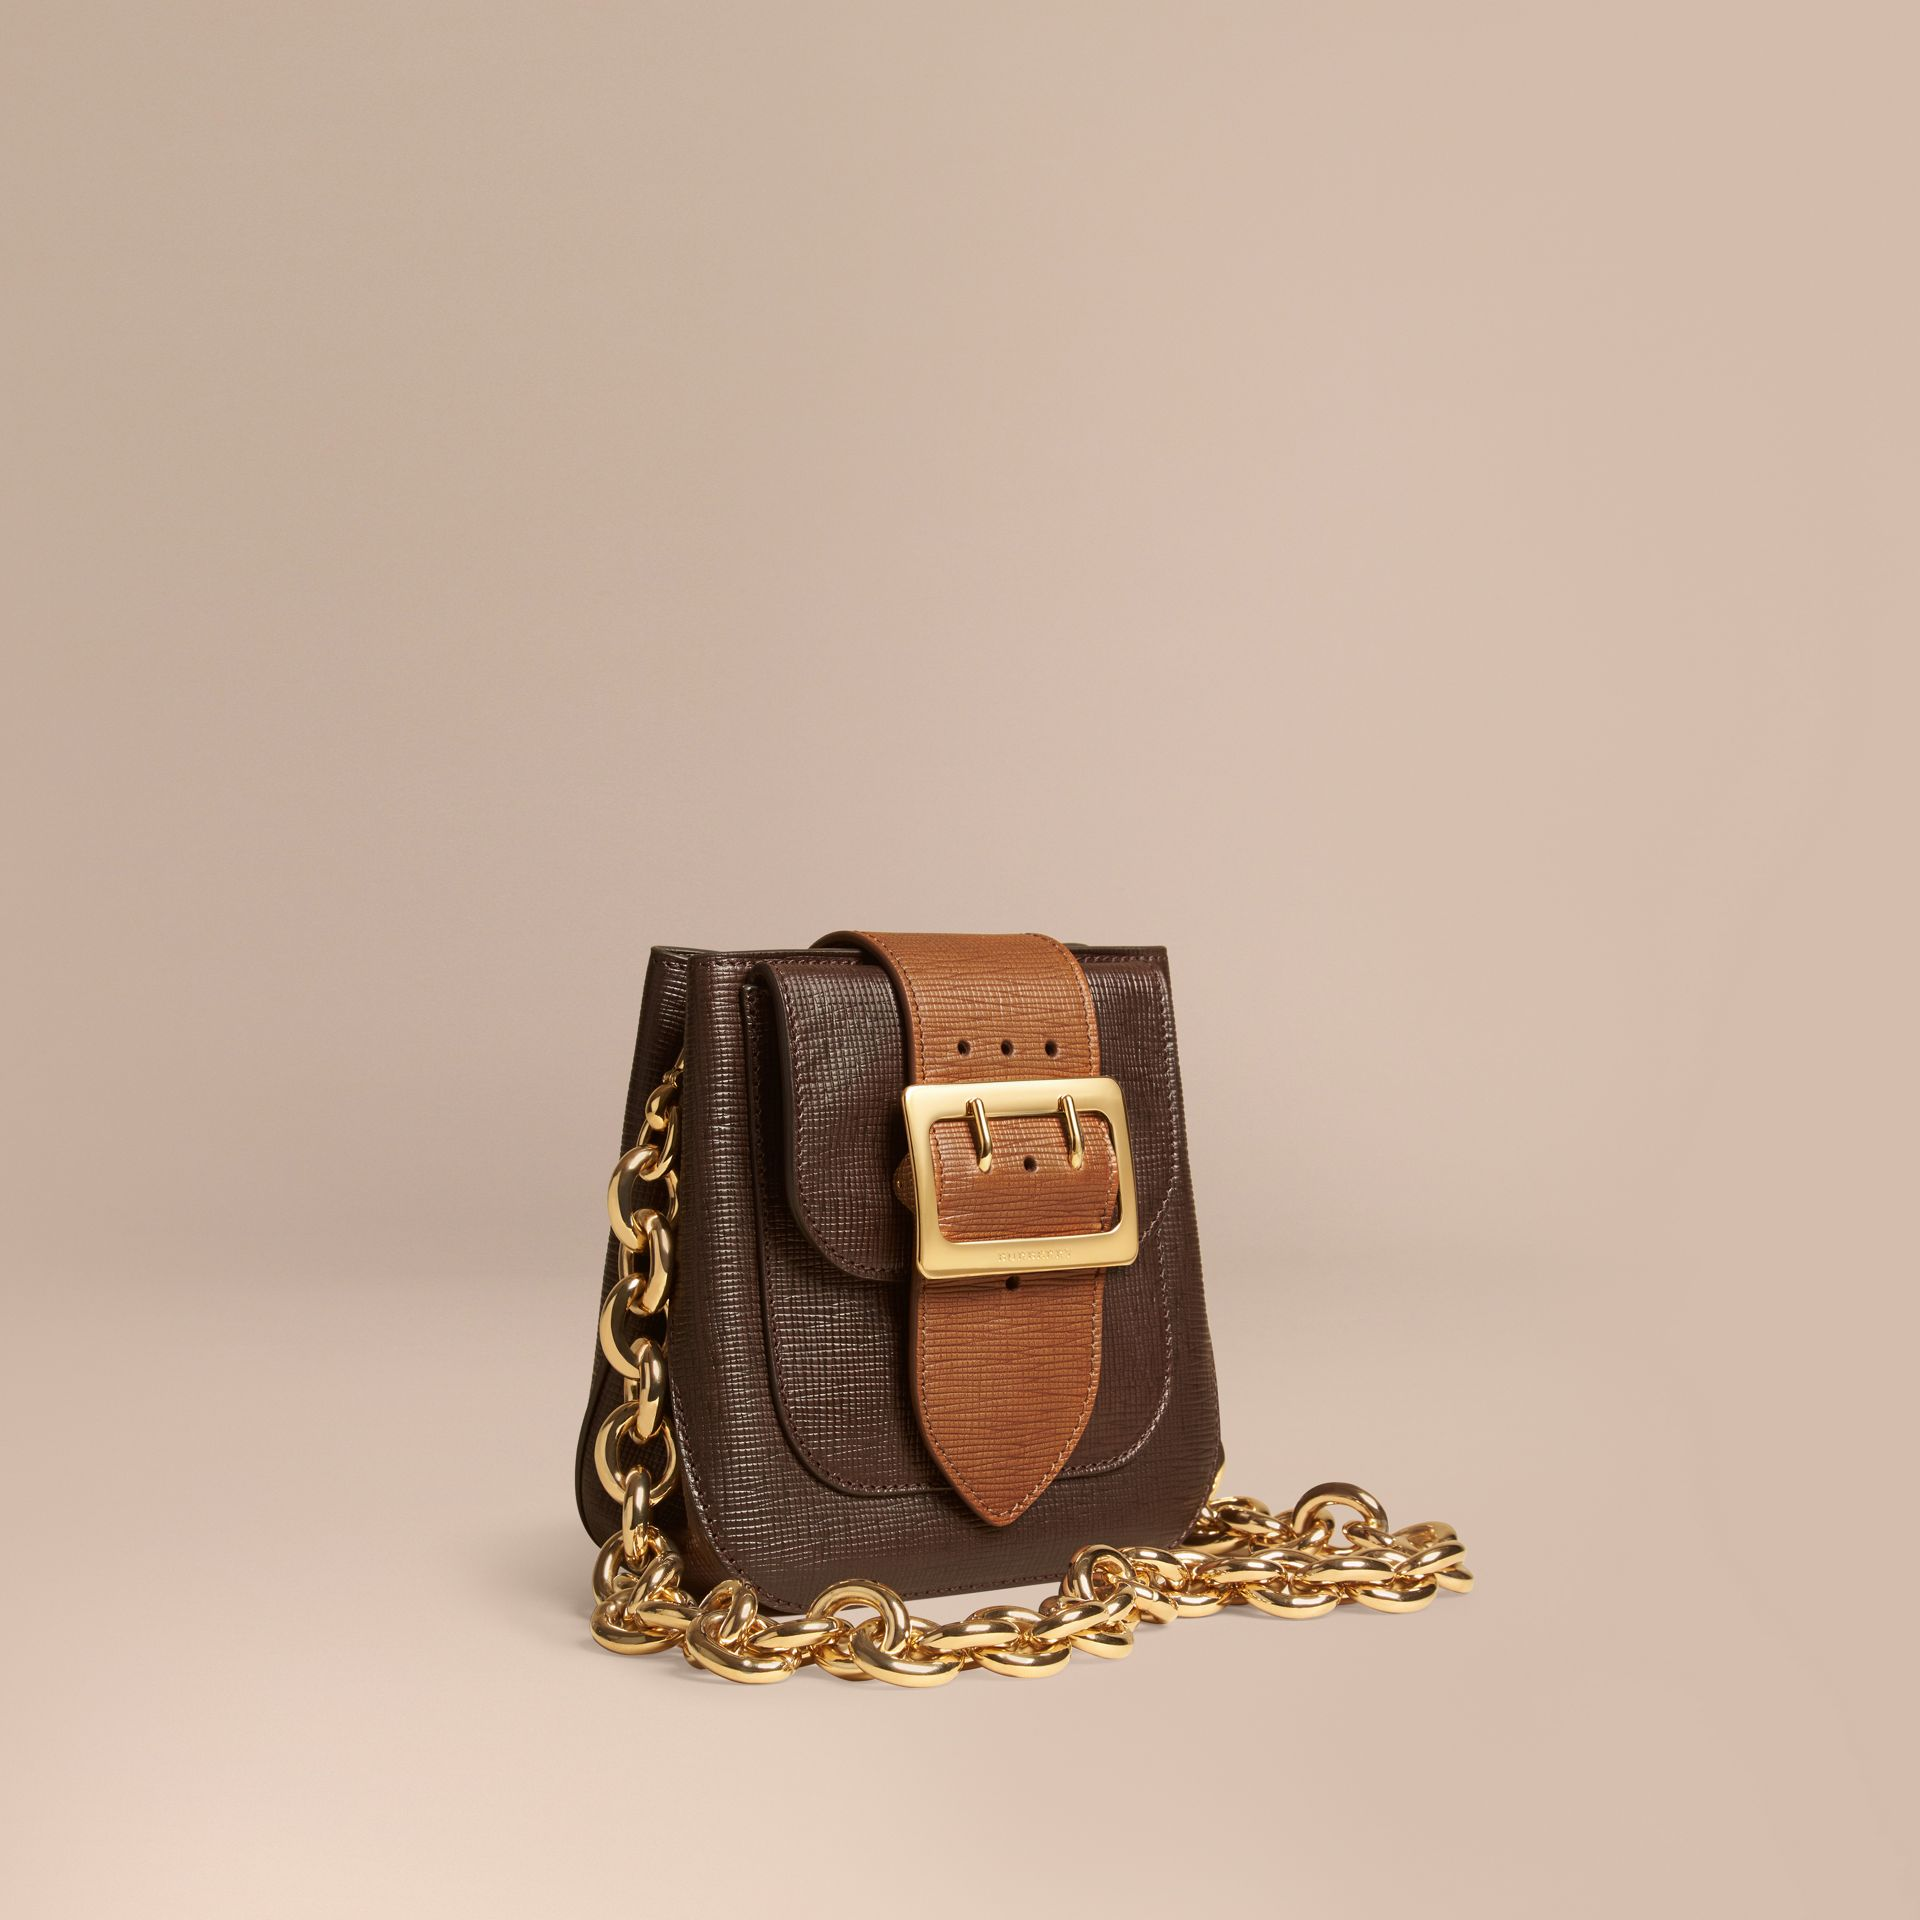 Dark clove brown The Small Square Buckle Bag in Textured Leather - gallery image 1